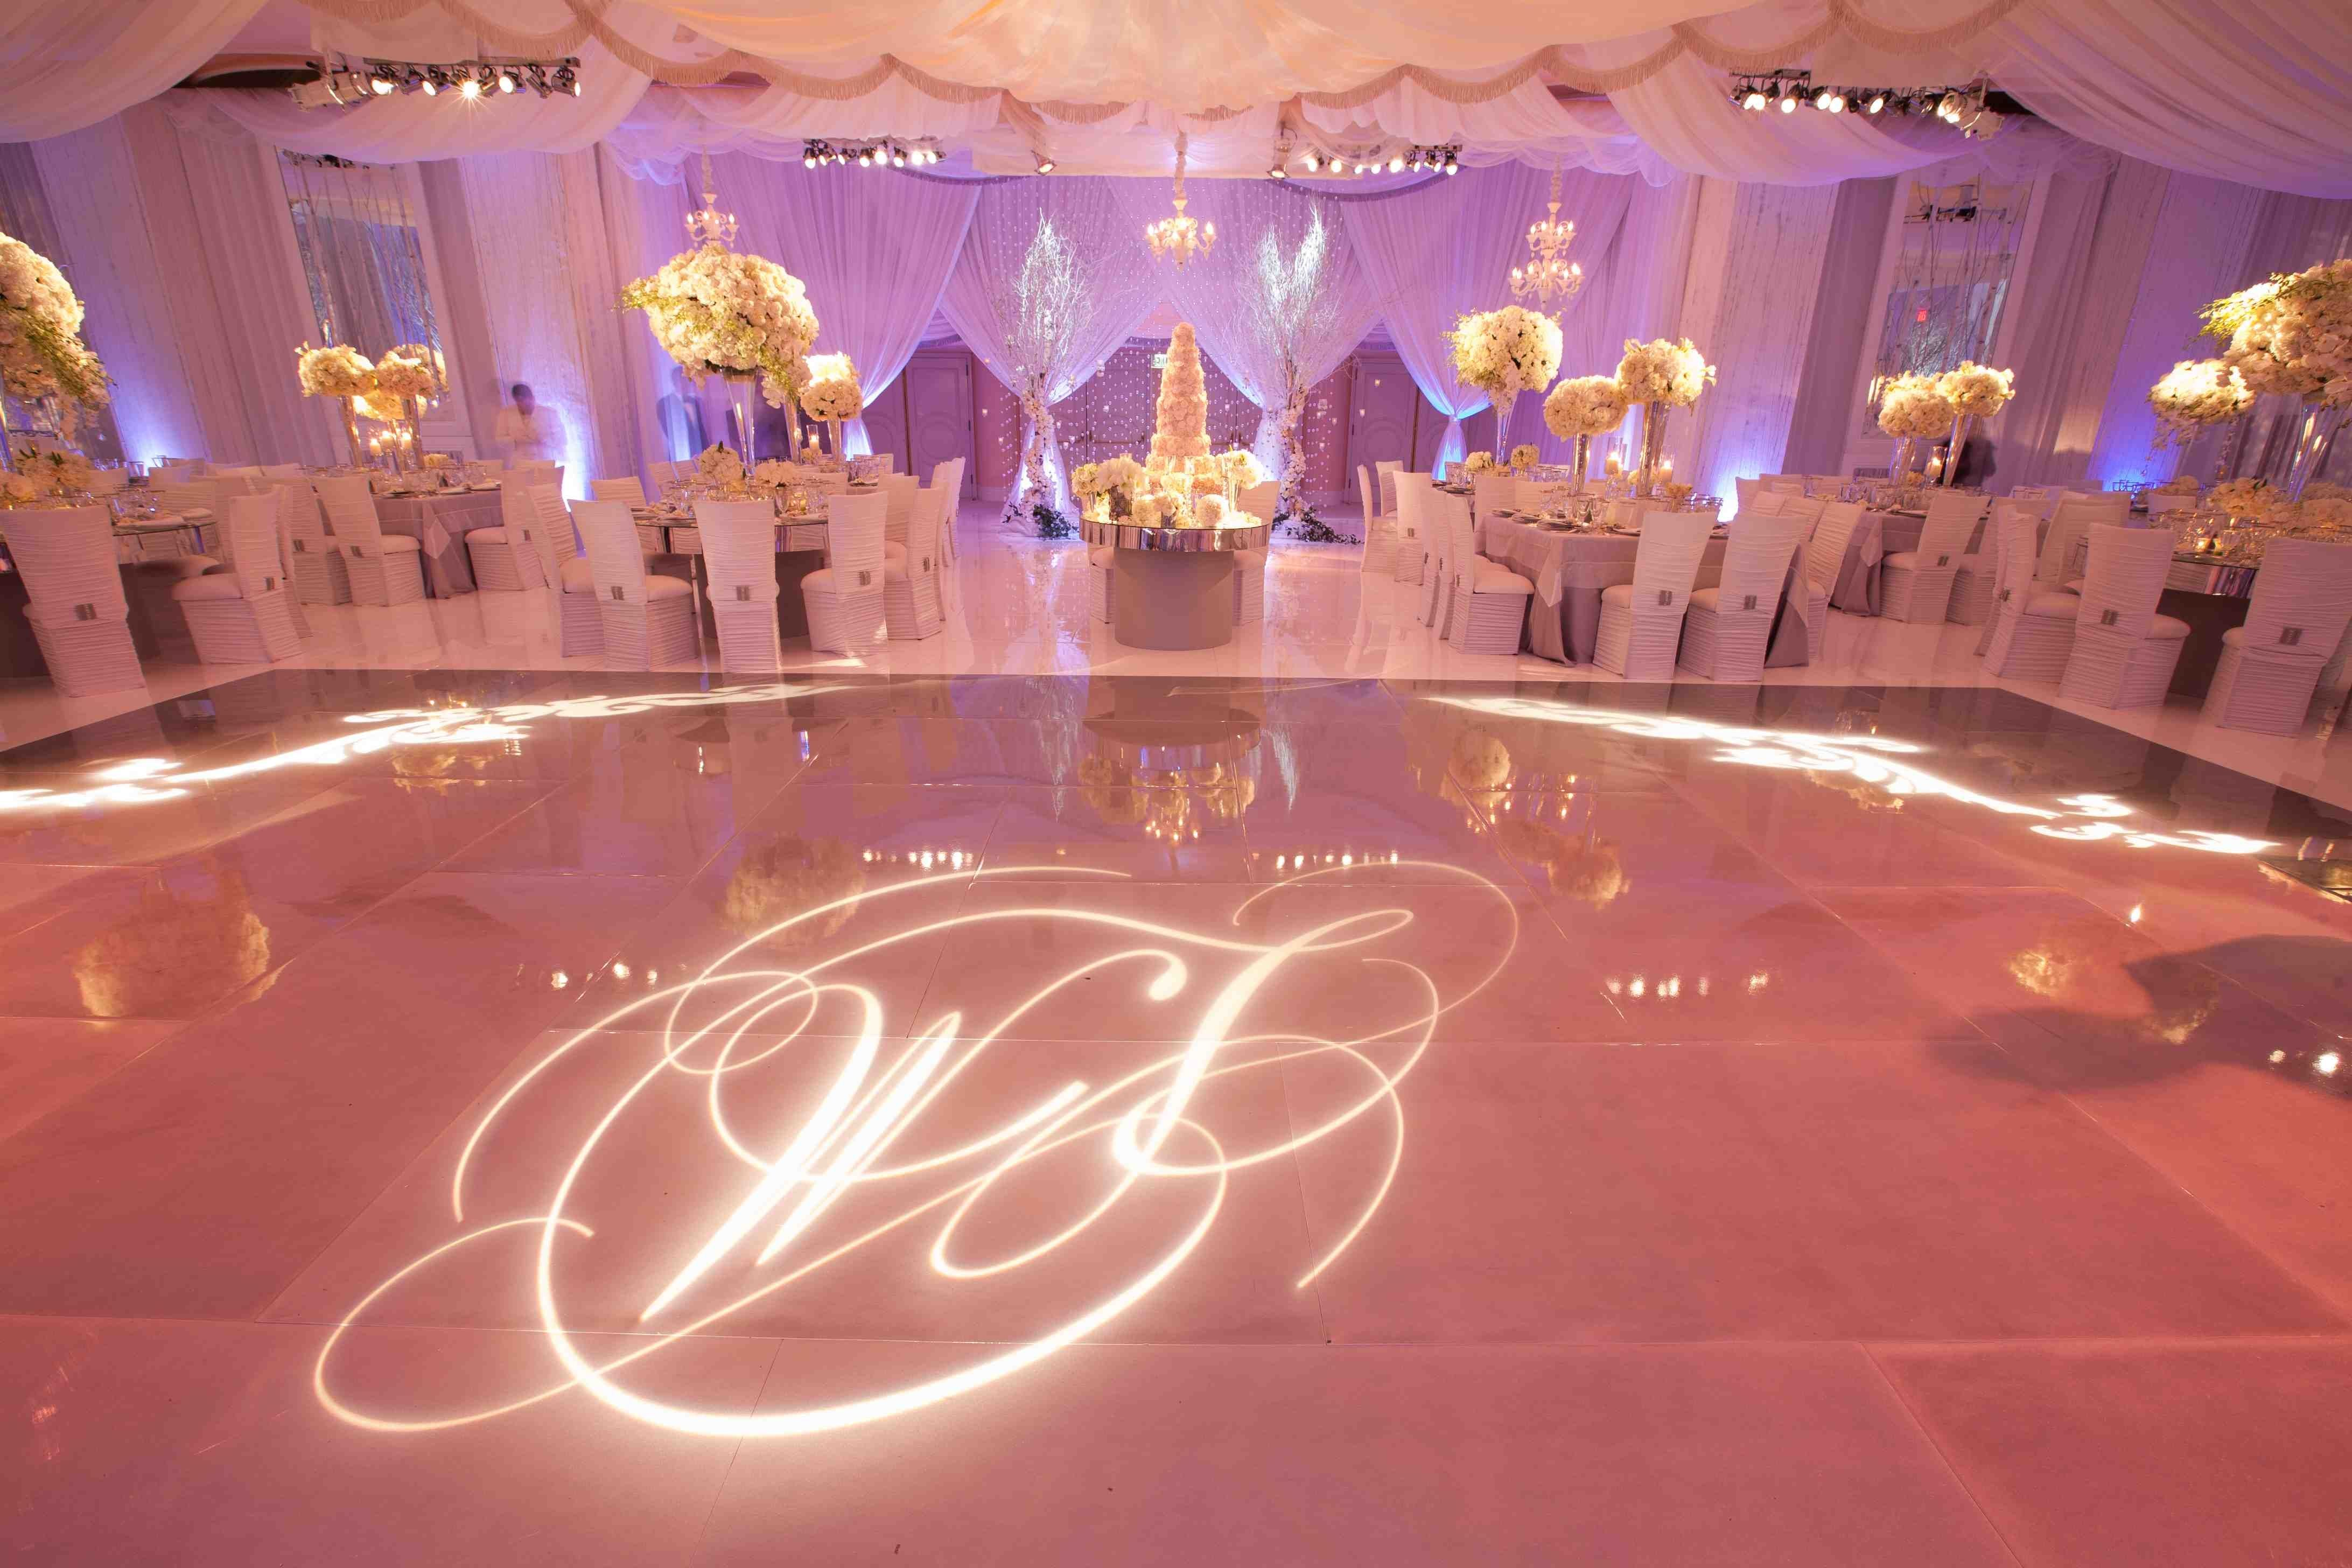 Monogram Wedding Decorations Ideas Inside Weddings With Regard To